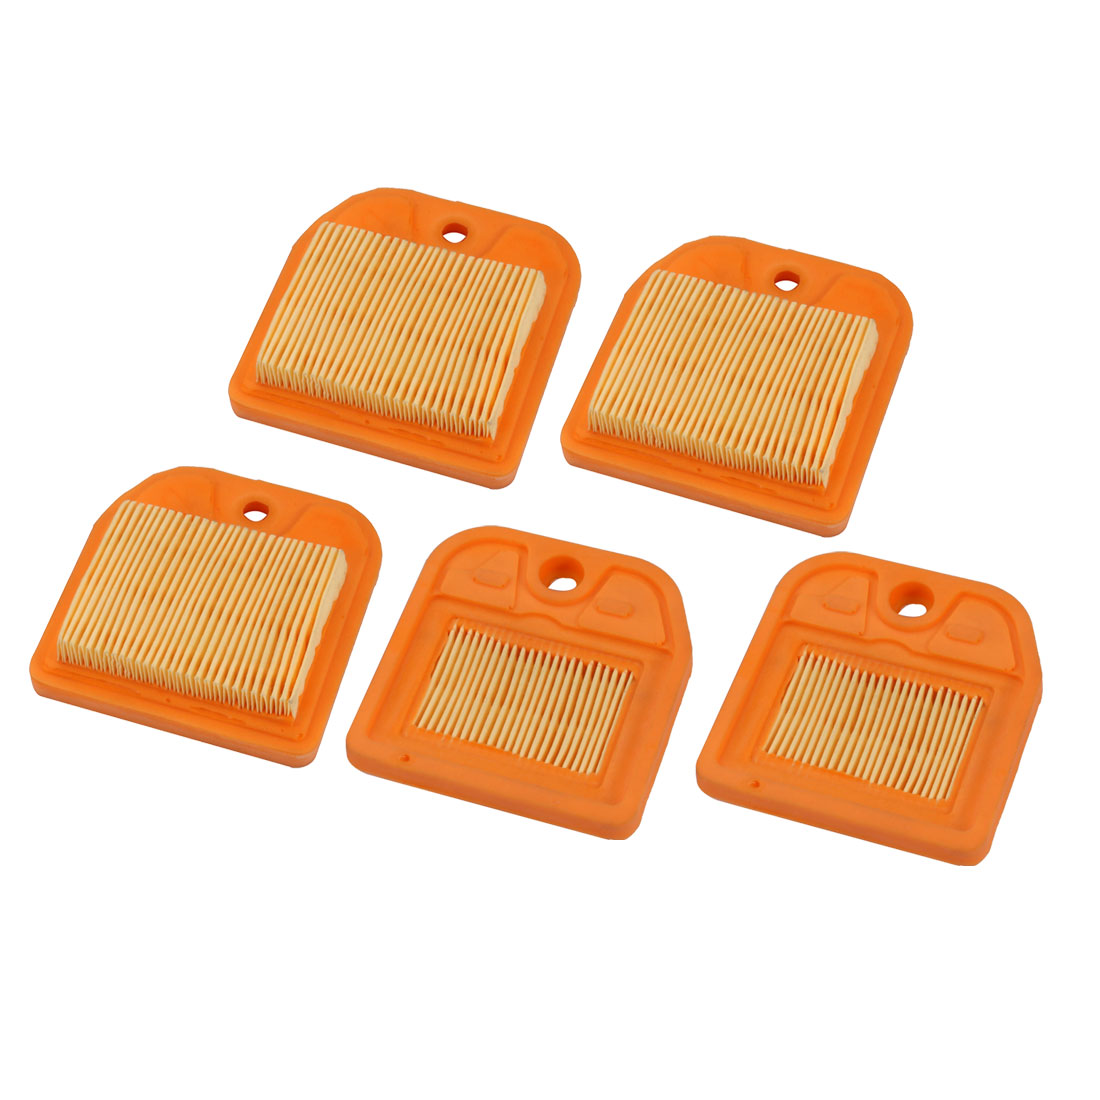 5pcs Replacement Guard Panel Engine Air Filter Cleaner Accessory for HS81T